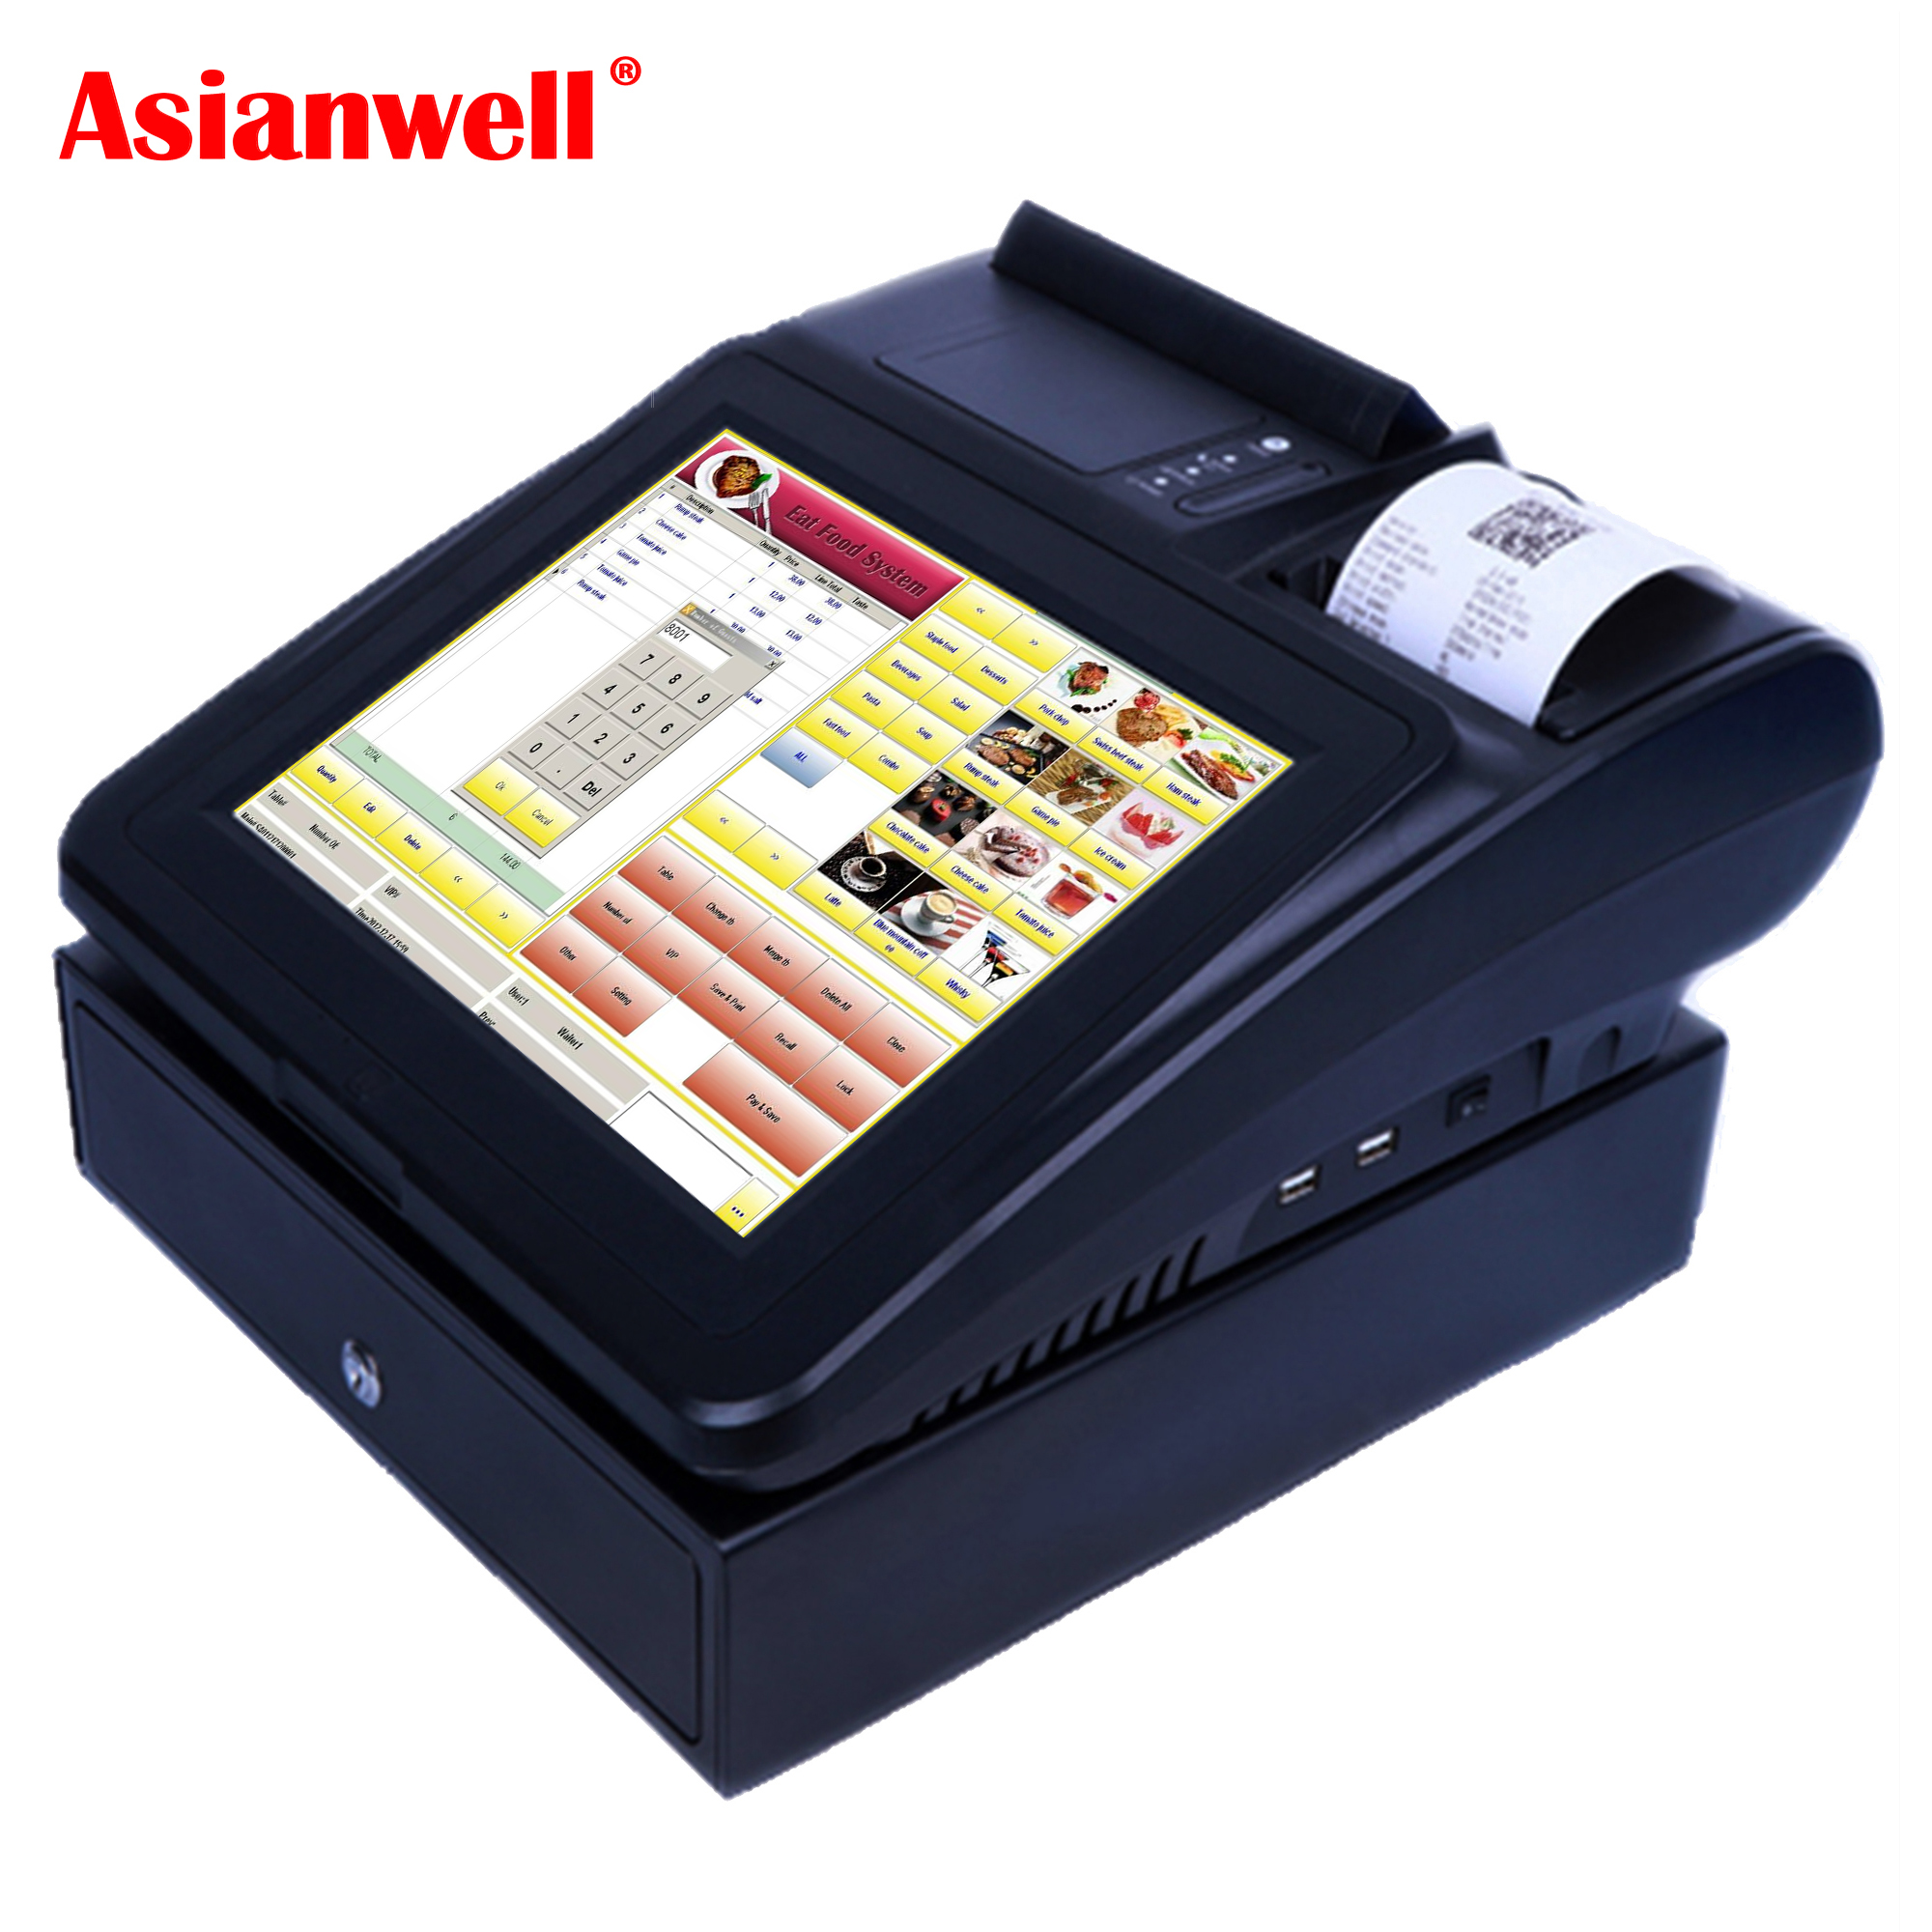 AW-I5 High quality touch 500gb hdd pos terminal 3g systems 12/17 inch touch system/pos machine/pos all in one with printer